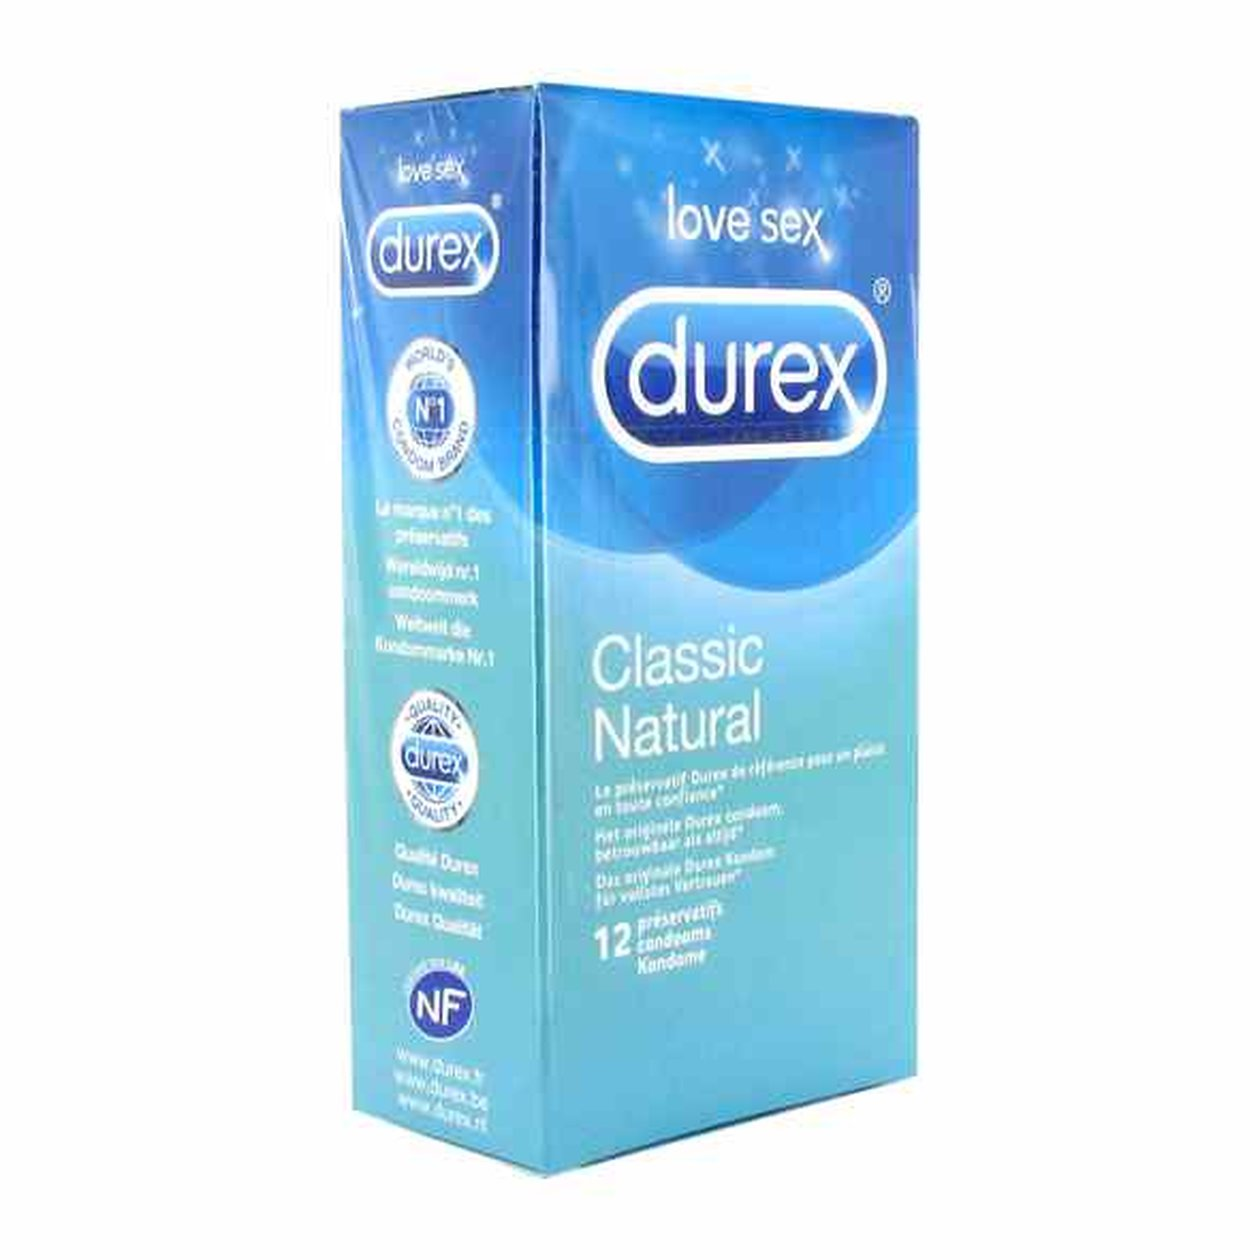 Durex Classic Natural Condoms 12 pcs